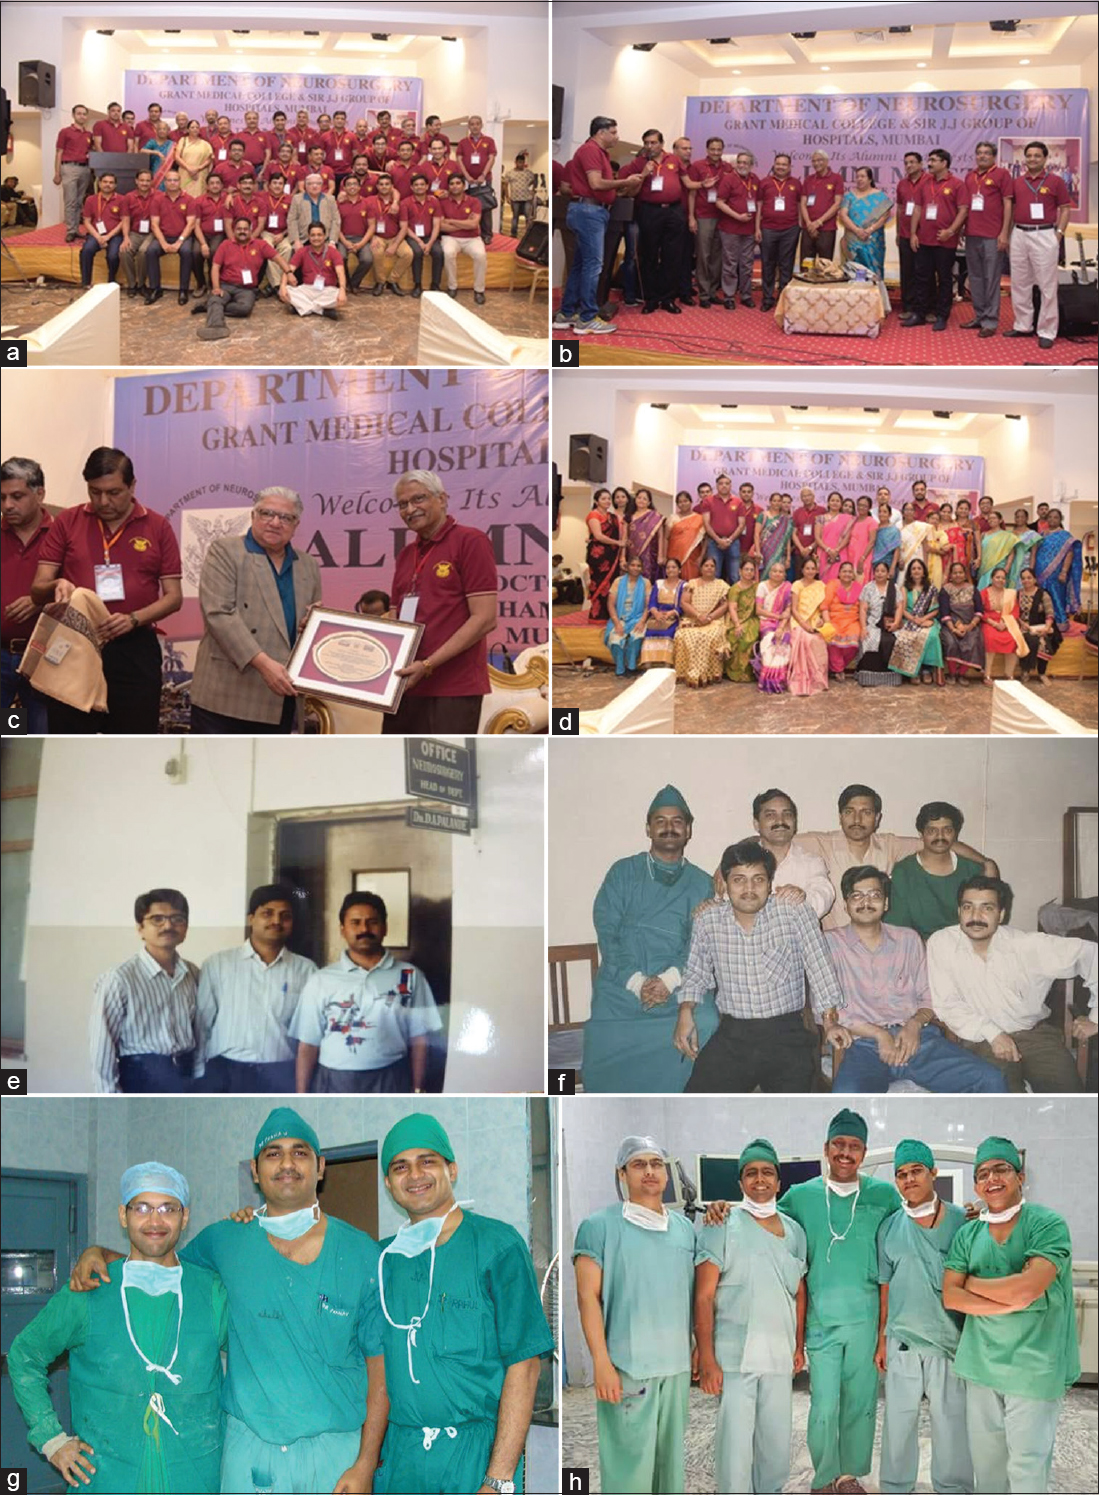 Figure 5: (a) Alumni of Department of Neursourgery, J.J. Hospital, Mumbai. (b) Felicitation of Dr. D.A. Palande by his students in honor of his service to the department. (c) Felicitation of Dr. D.A. Palande by Dr. M. Virani in honor of his service to the department. (d) Nurses and sisters who have rendered their service to the department since its inception also participated in the get together. (e) (From left to right) Dr. Uday Ghate, Dr. Anjeev Chaurasia, Dr. Vijay Menon. (f) Dr. Menon, Dr. Chaurasia, Dr. Dijesh Shah, Dr. Shyam Agroya, Dr. Bharat Naik, Dr. Mukul Pandey: Neurosurgeons from 1990 to 2000. (g) Dr. Amit Jaiswal, Dr. Pranav Ghodgaonkar, Dr. Rahul Mally: Neurosurgeons from 2000 to 2010. (h) Dr. Anuj Bhide, Dr. Pravin Survashe, Dr. Hrushikesh K., Dr. Laxmikant Bhople, Dr. Harish Naik: Neurosurgeons from 2010 to 2018